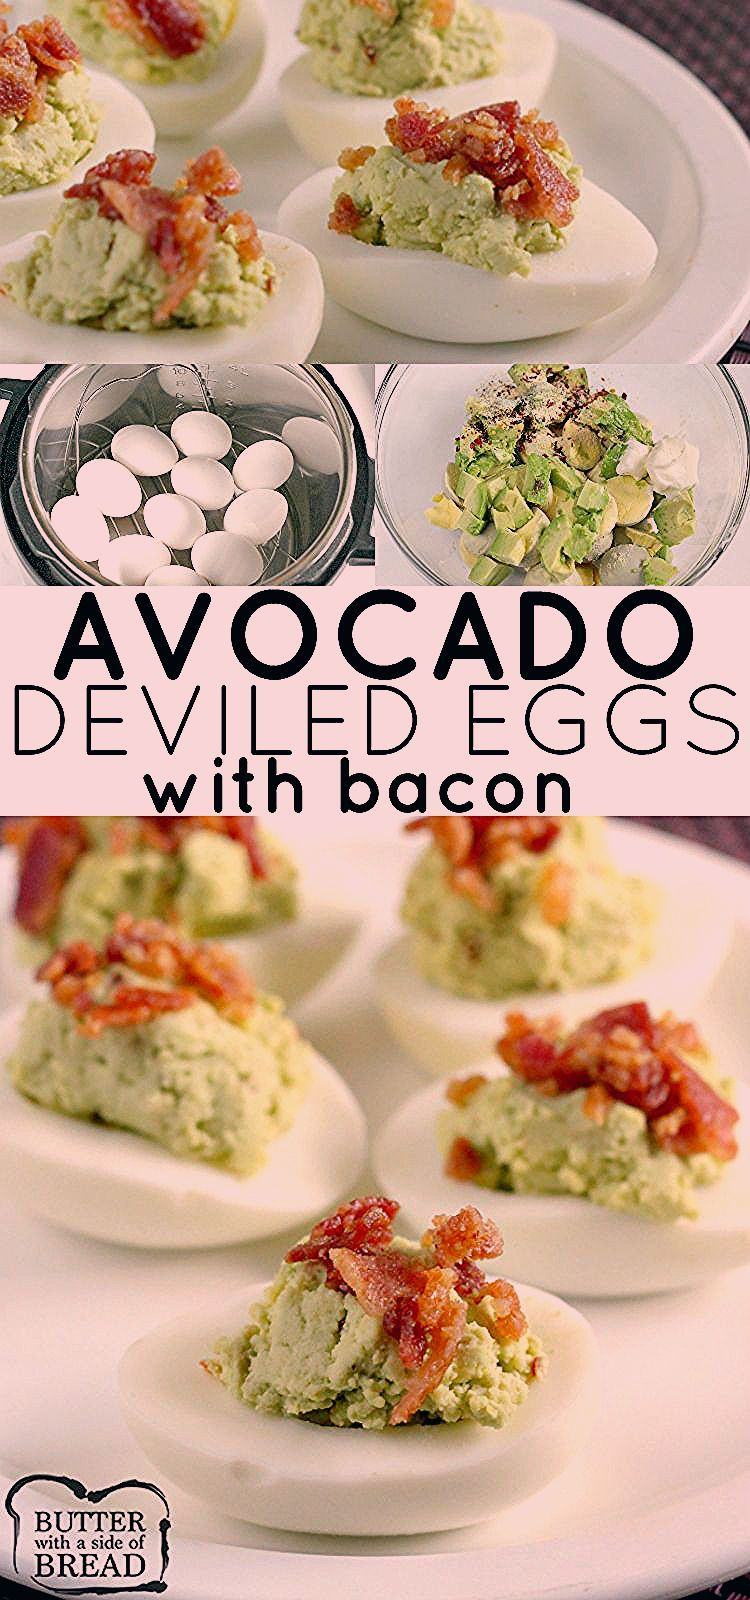 Bacon Avocado Deviled Eggs made with all the classic deviled egg ingredients, plus avocado! Creamy,